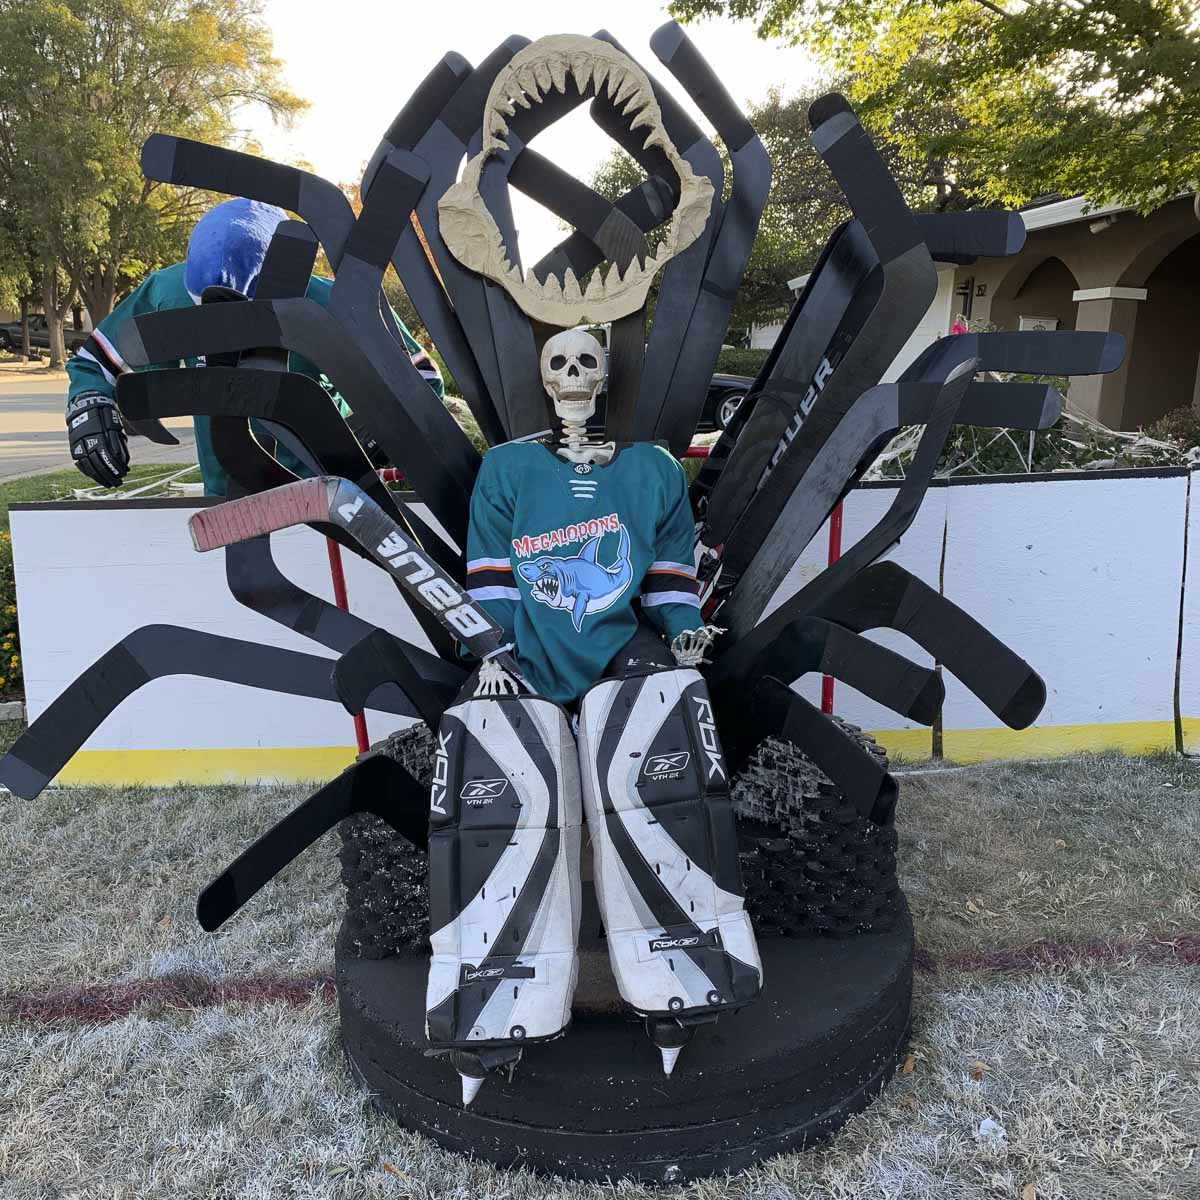 Megalodon goalie #31 Bones (ancestor of SJ Sharks goalie Jones) sitting on a throne made of goalie sticks and hockey pucks inspired by San Jose Sharks Game of Jones bobblehead giveaway.